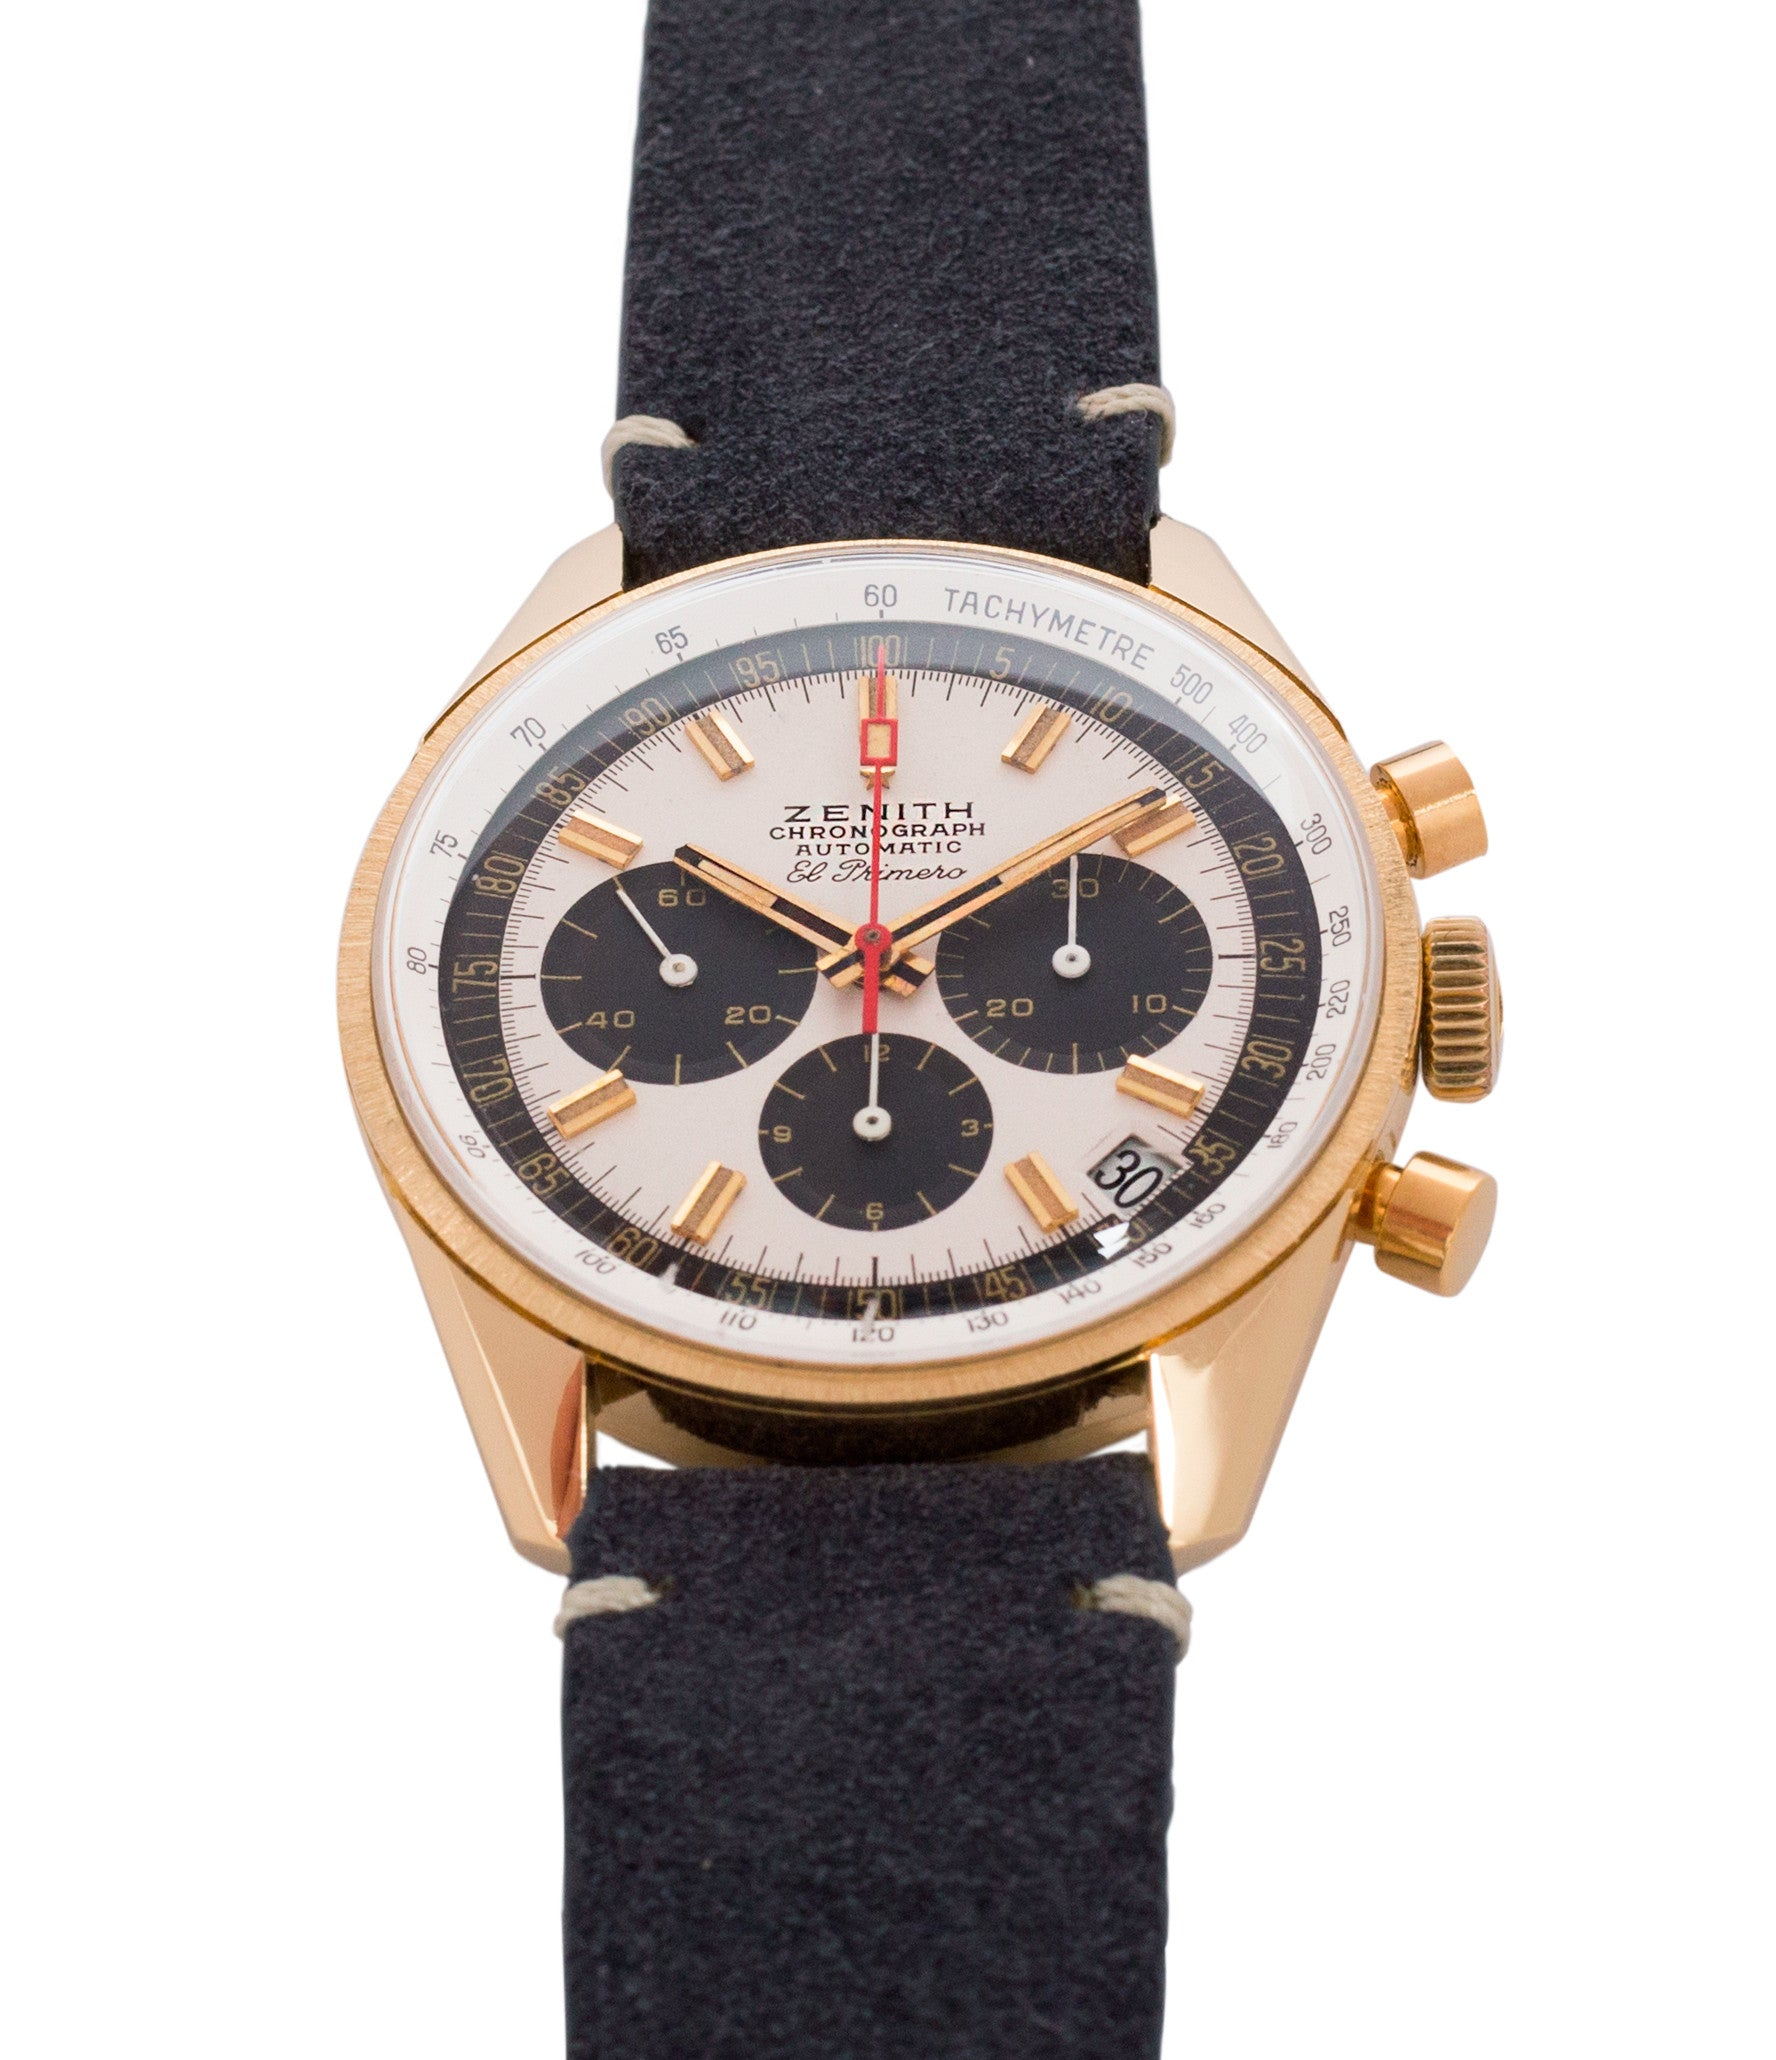 silver dial black subs Zenith El Primero G381 rare yellow gold vintage chronograph date watch for sale online at A Collected Man London vintage watch specialist